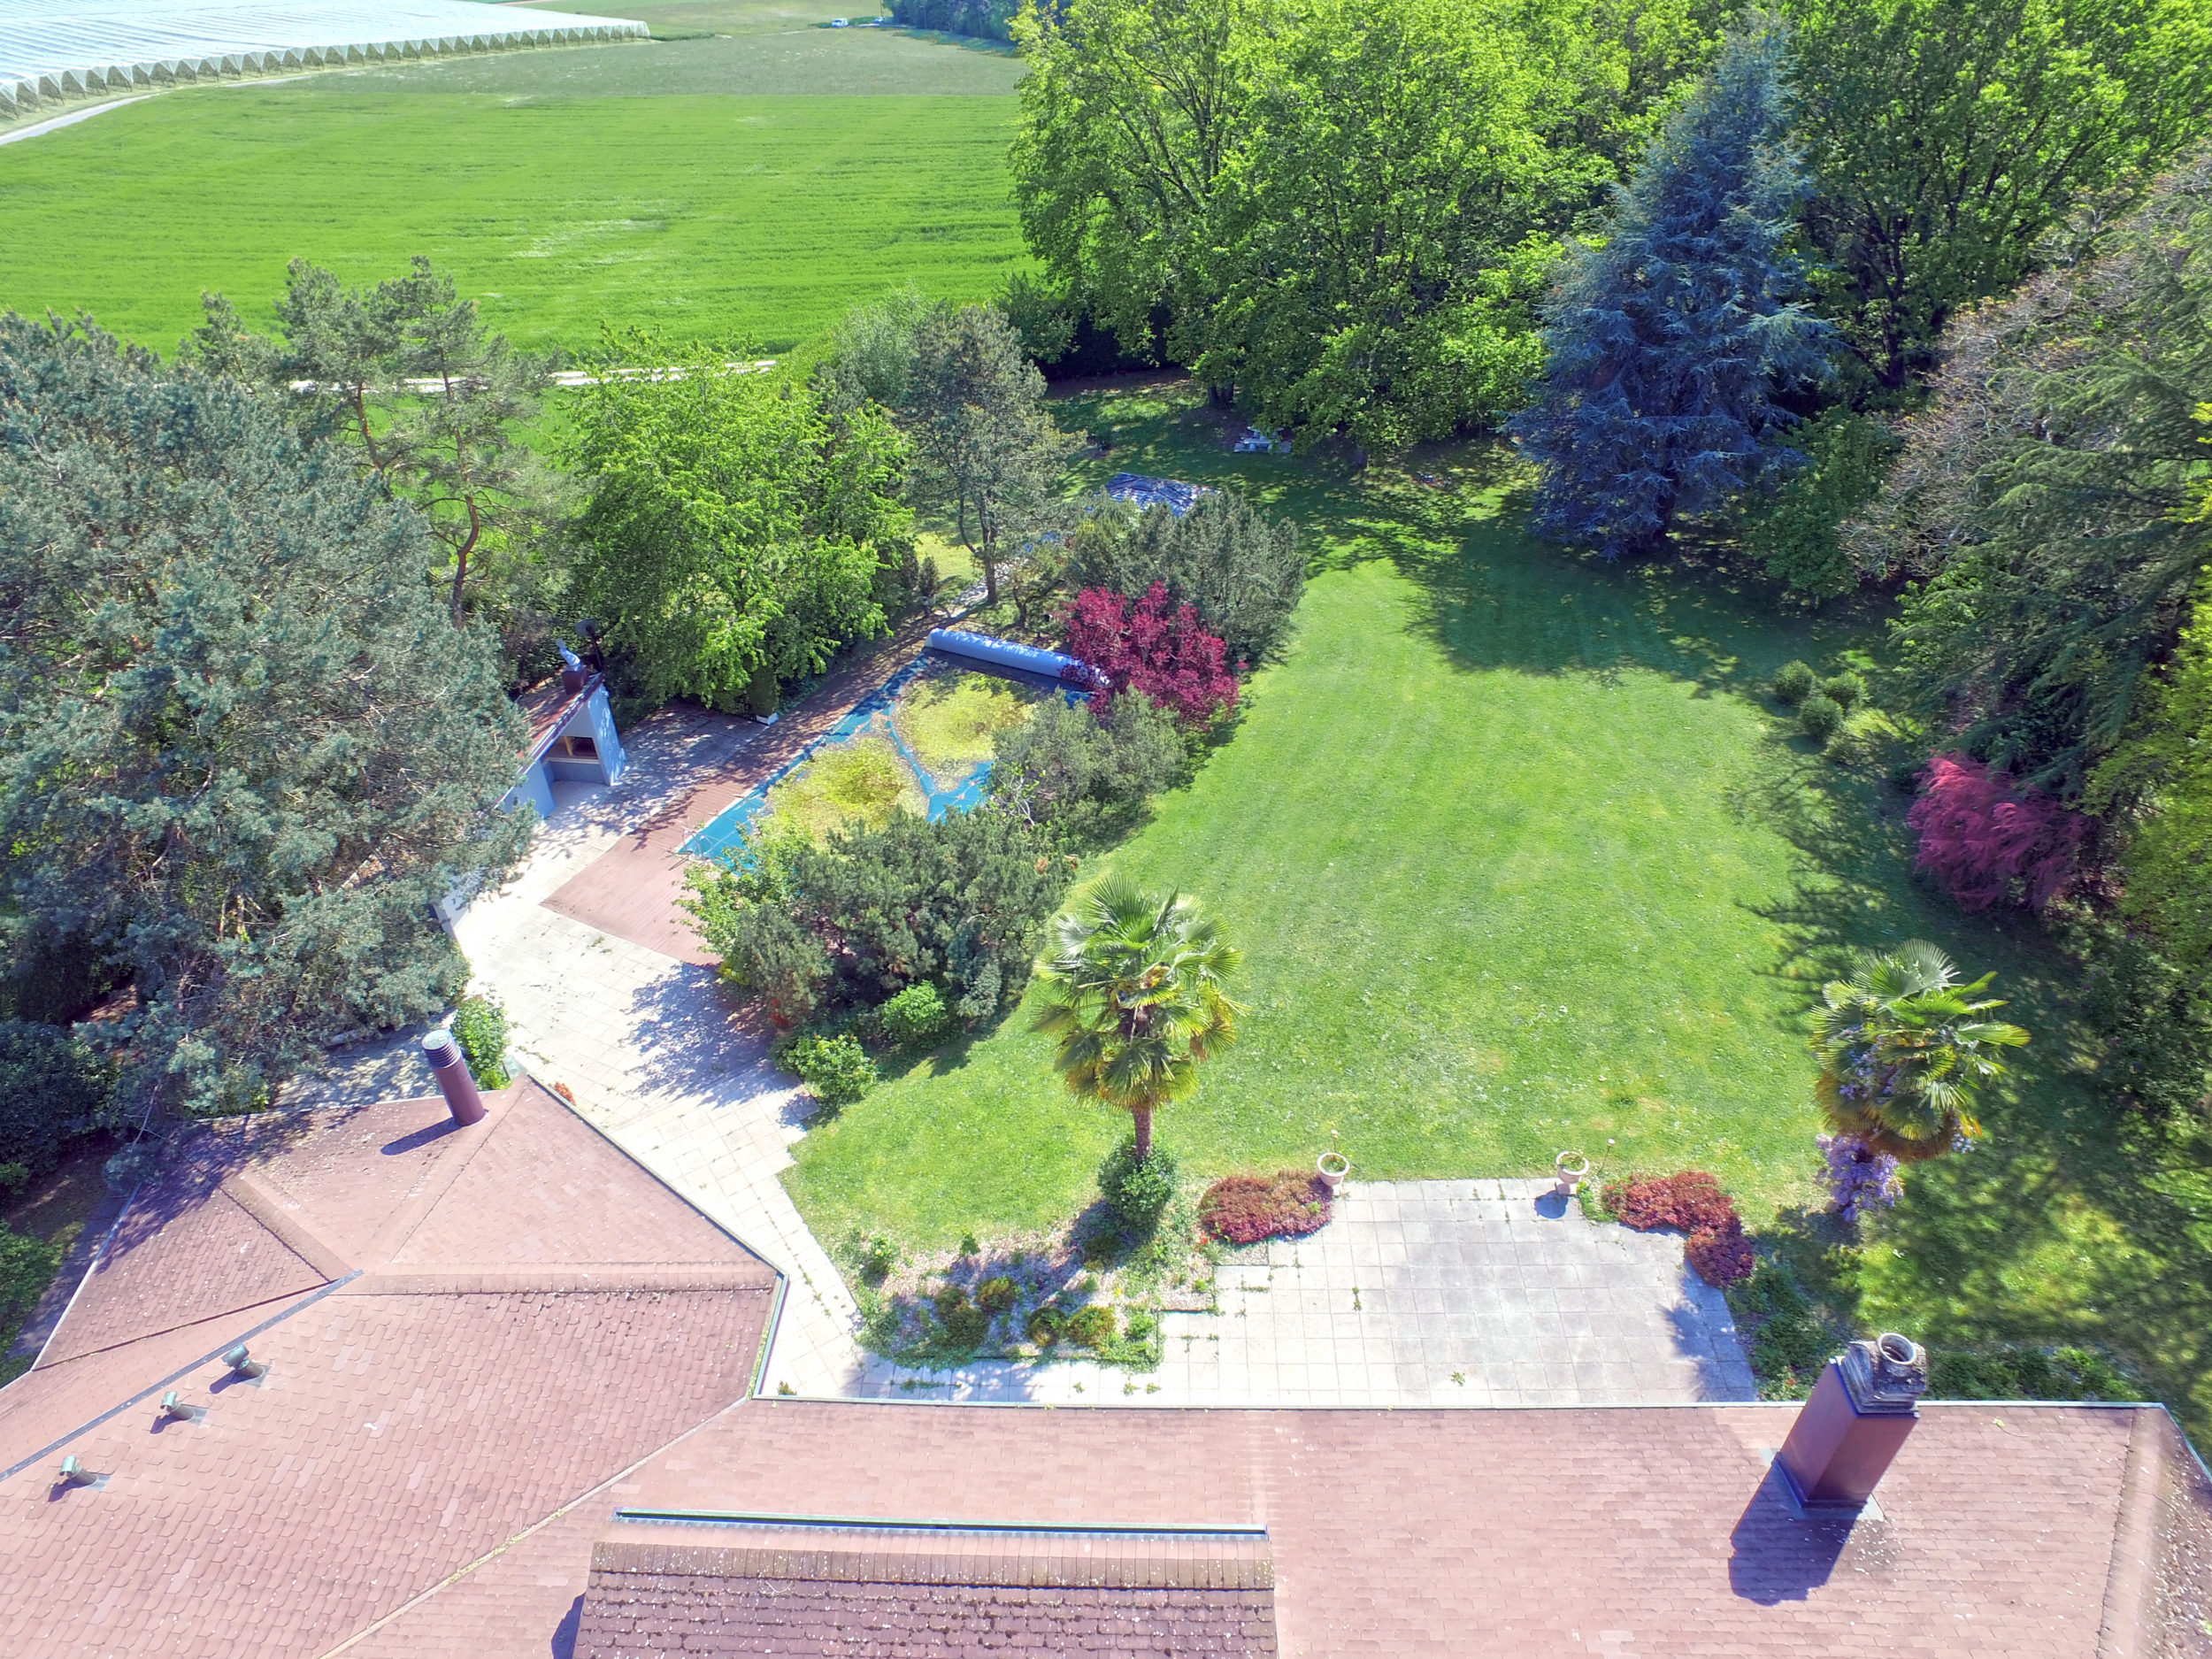 Aerial photo - Drone - Real estate in Lussy-Sur-Morges